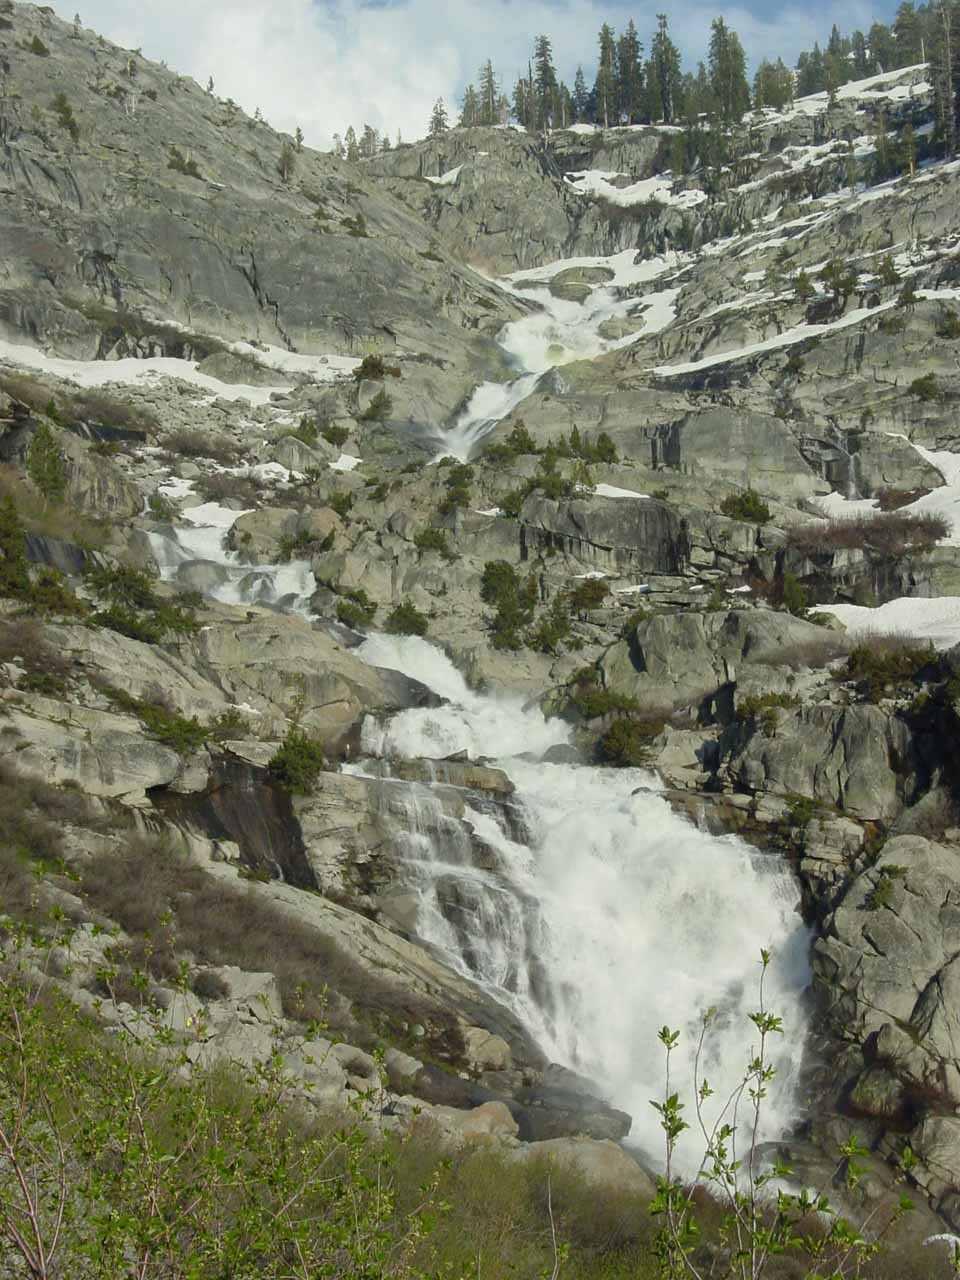 Another look at the twisting cascade of Tokopah Falls